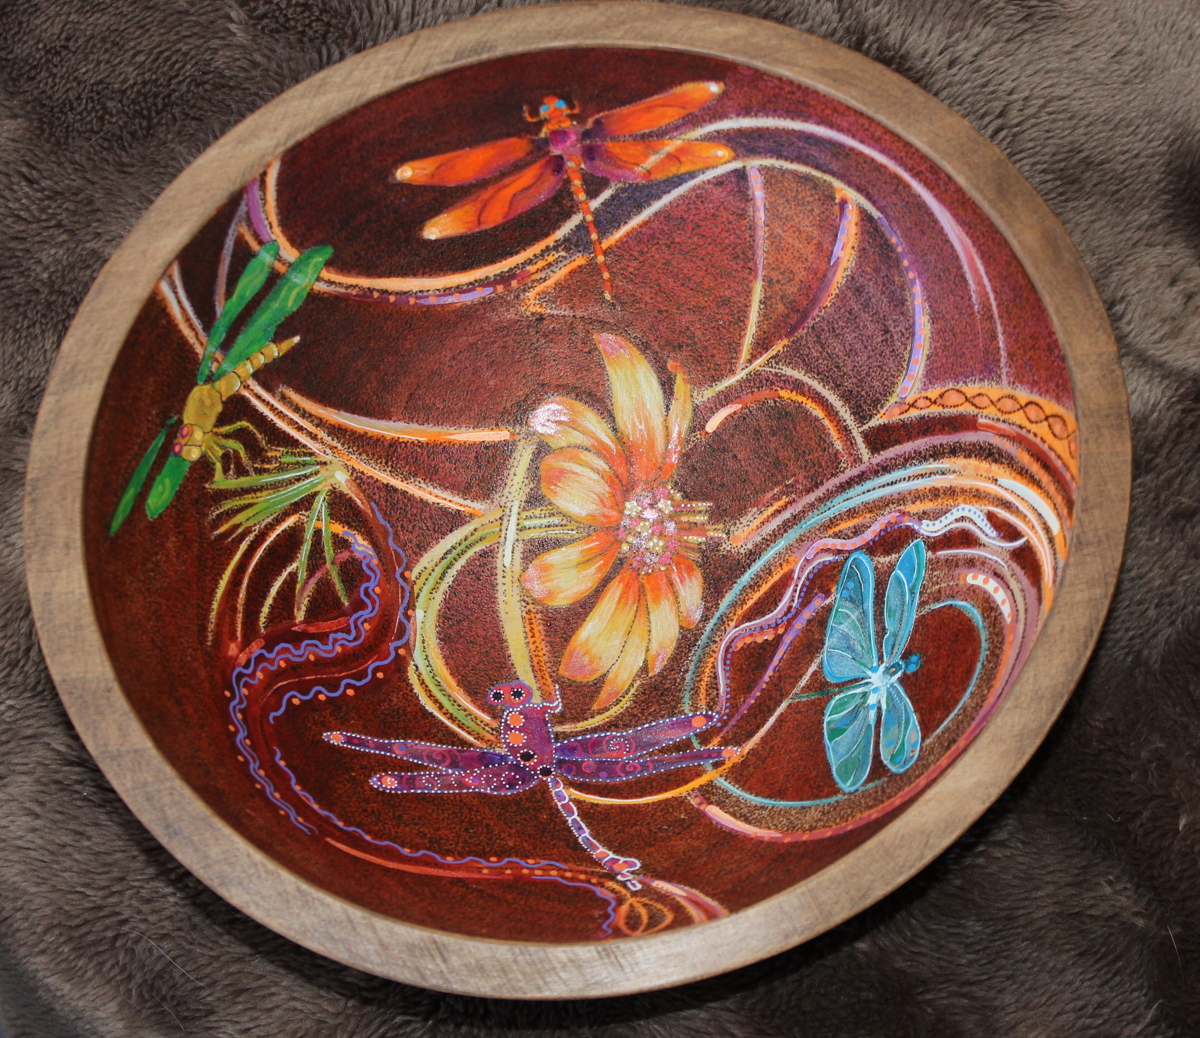 Dragon Fly Bowl (large view)